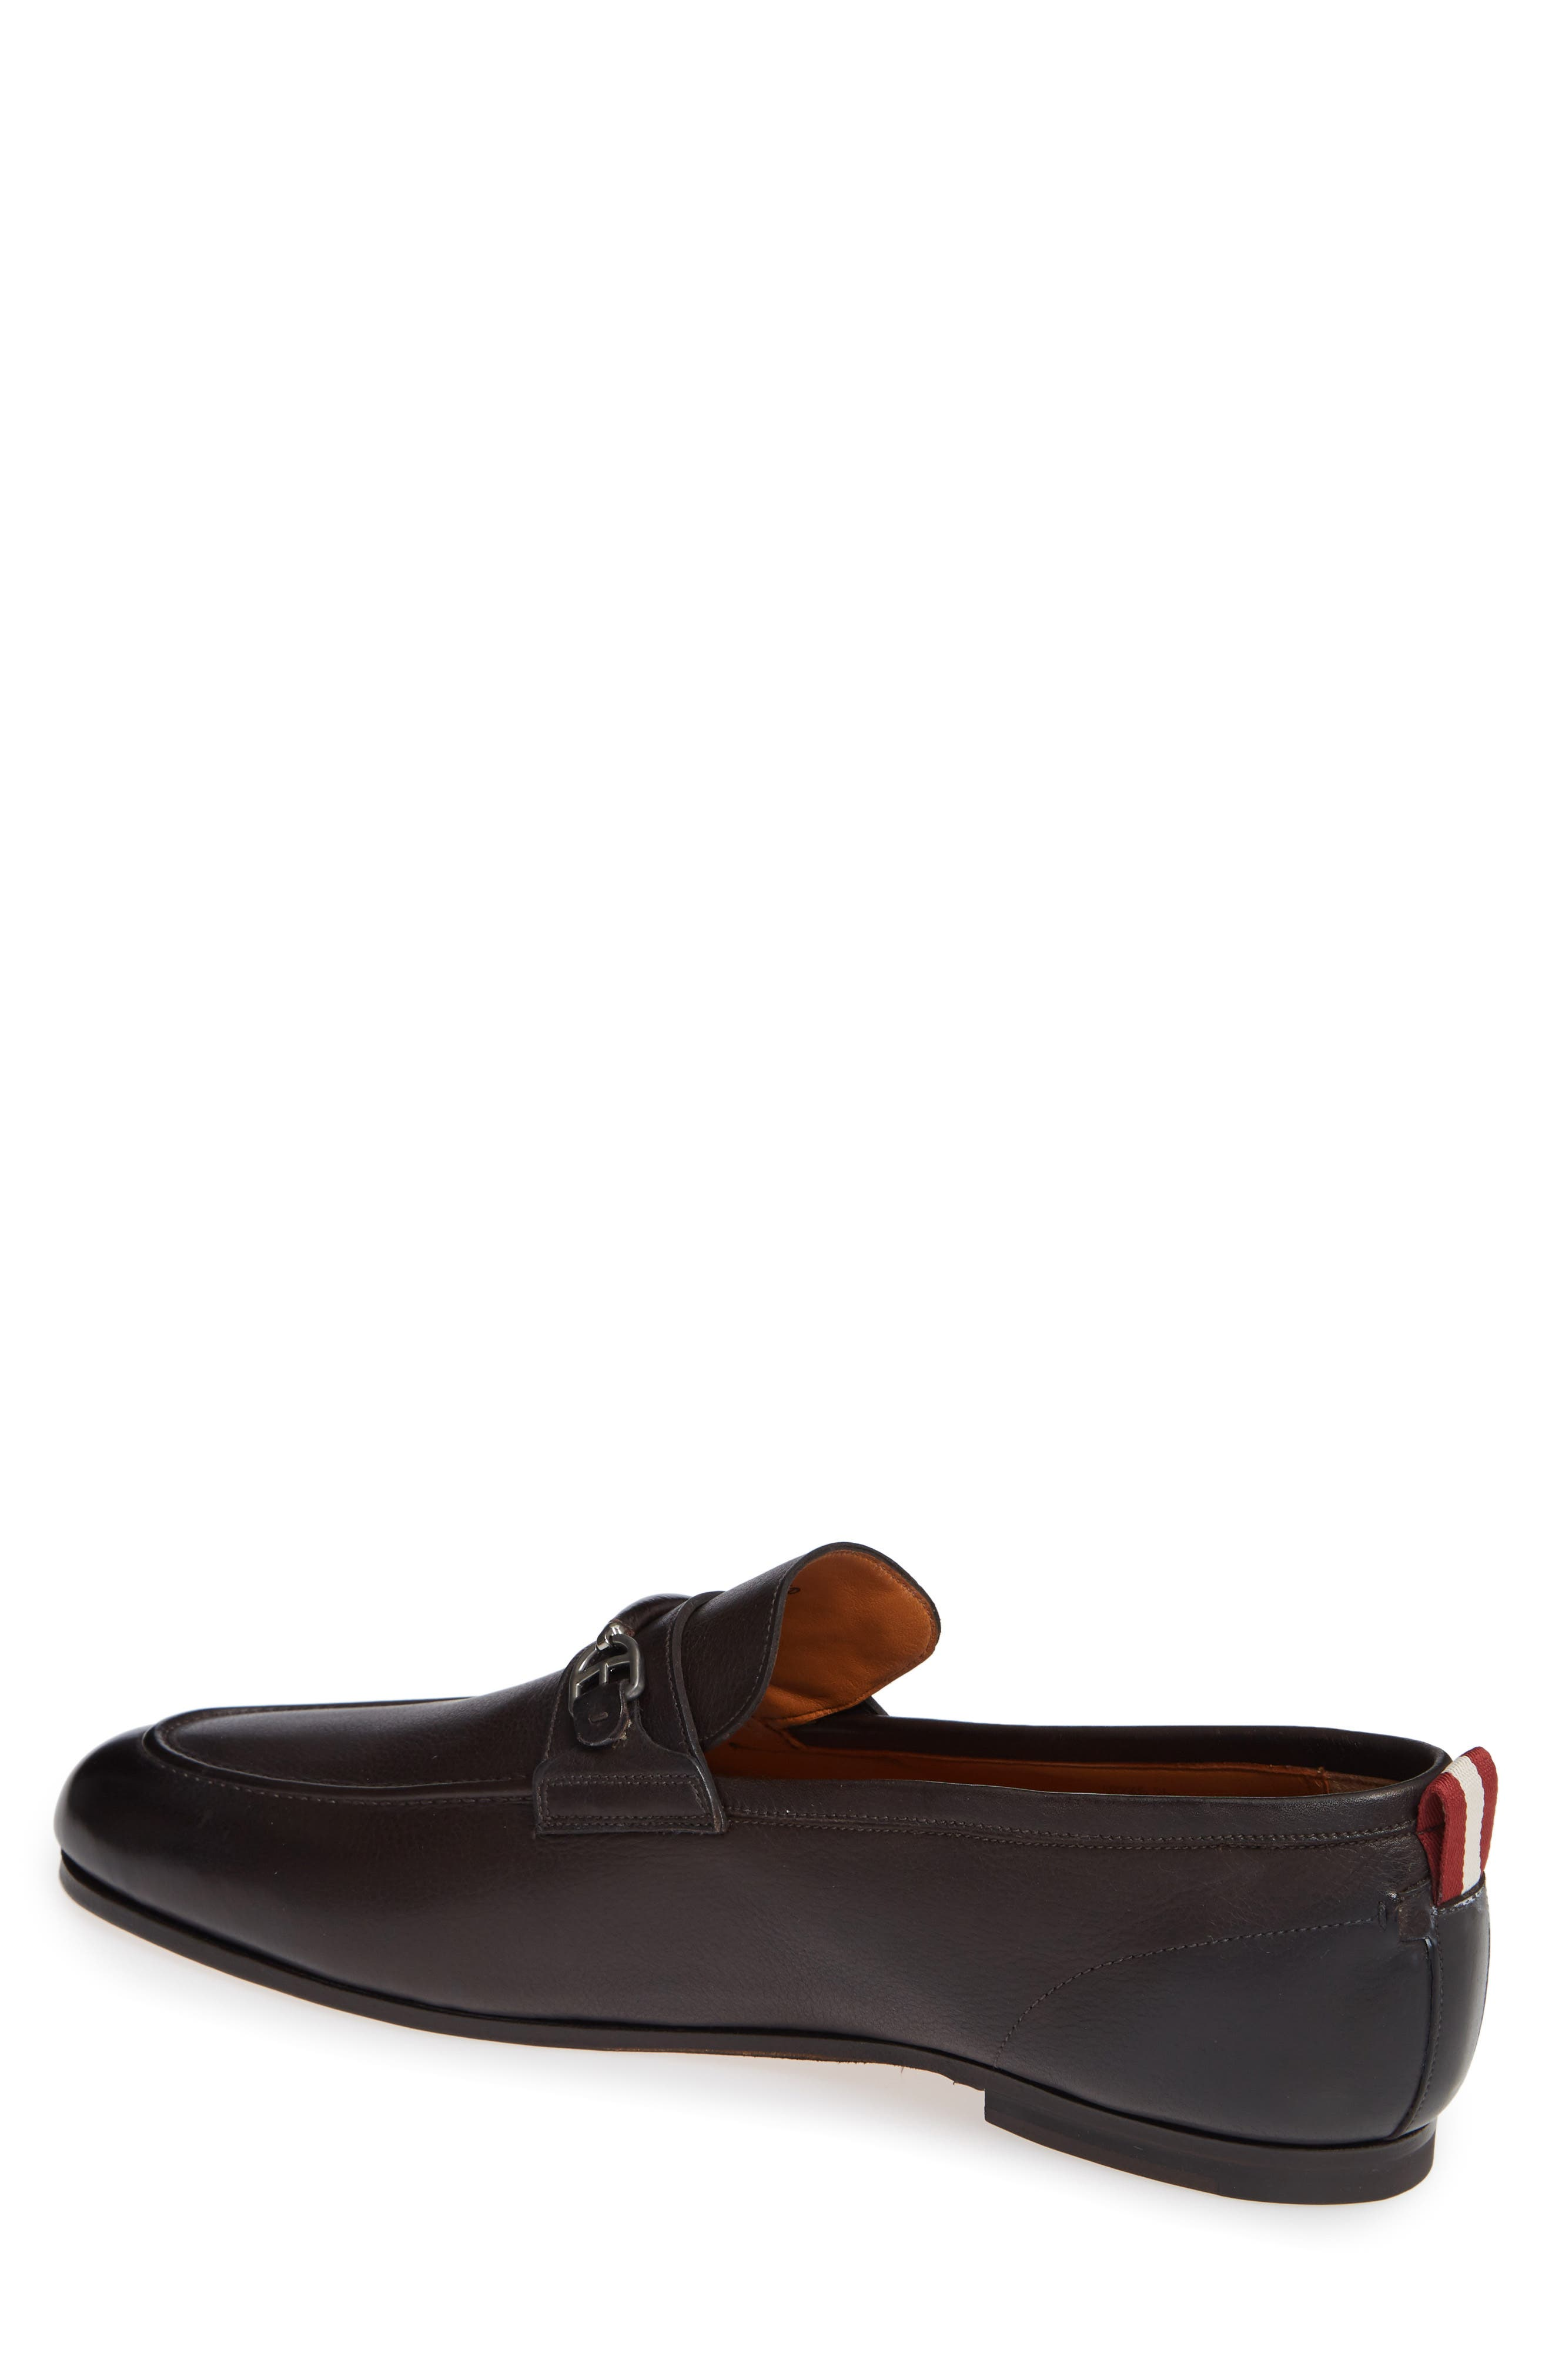 Plintor Loafer,                             Alternate thumbnail 2, color,                             COFFEE BROWN